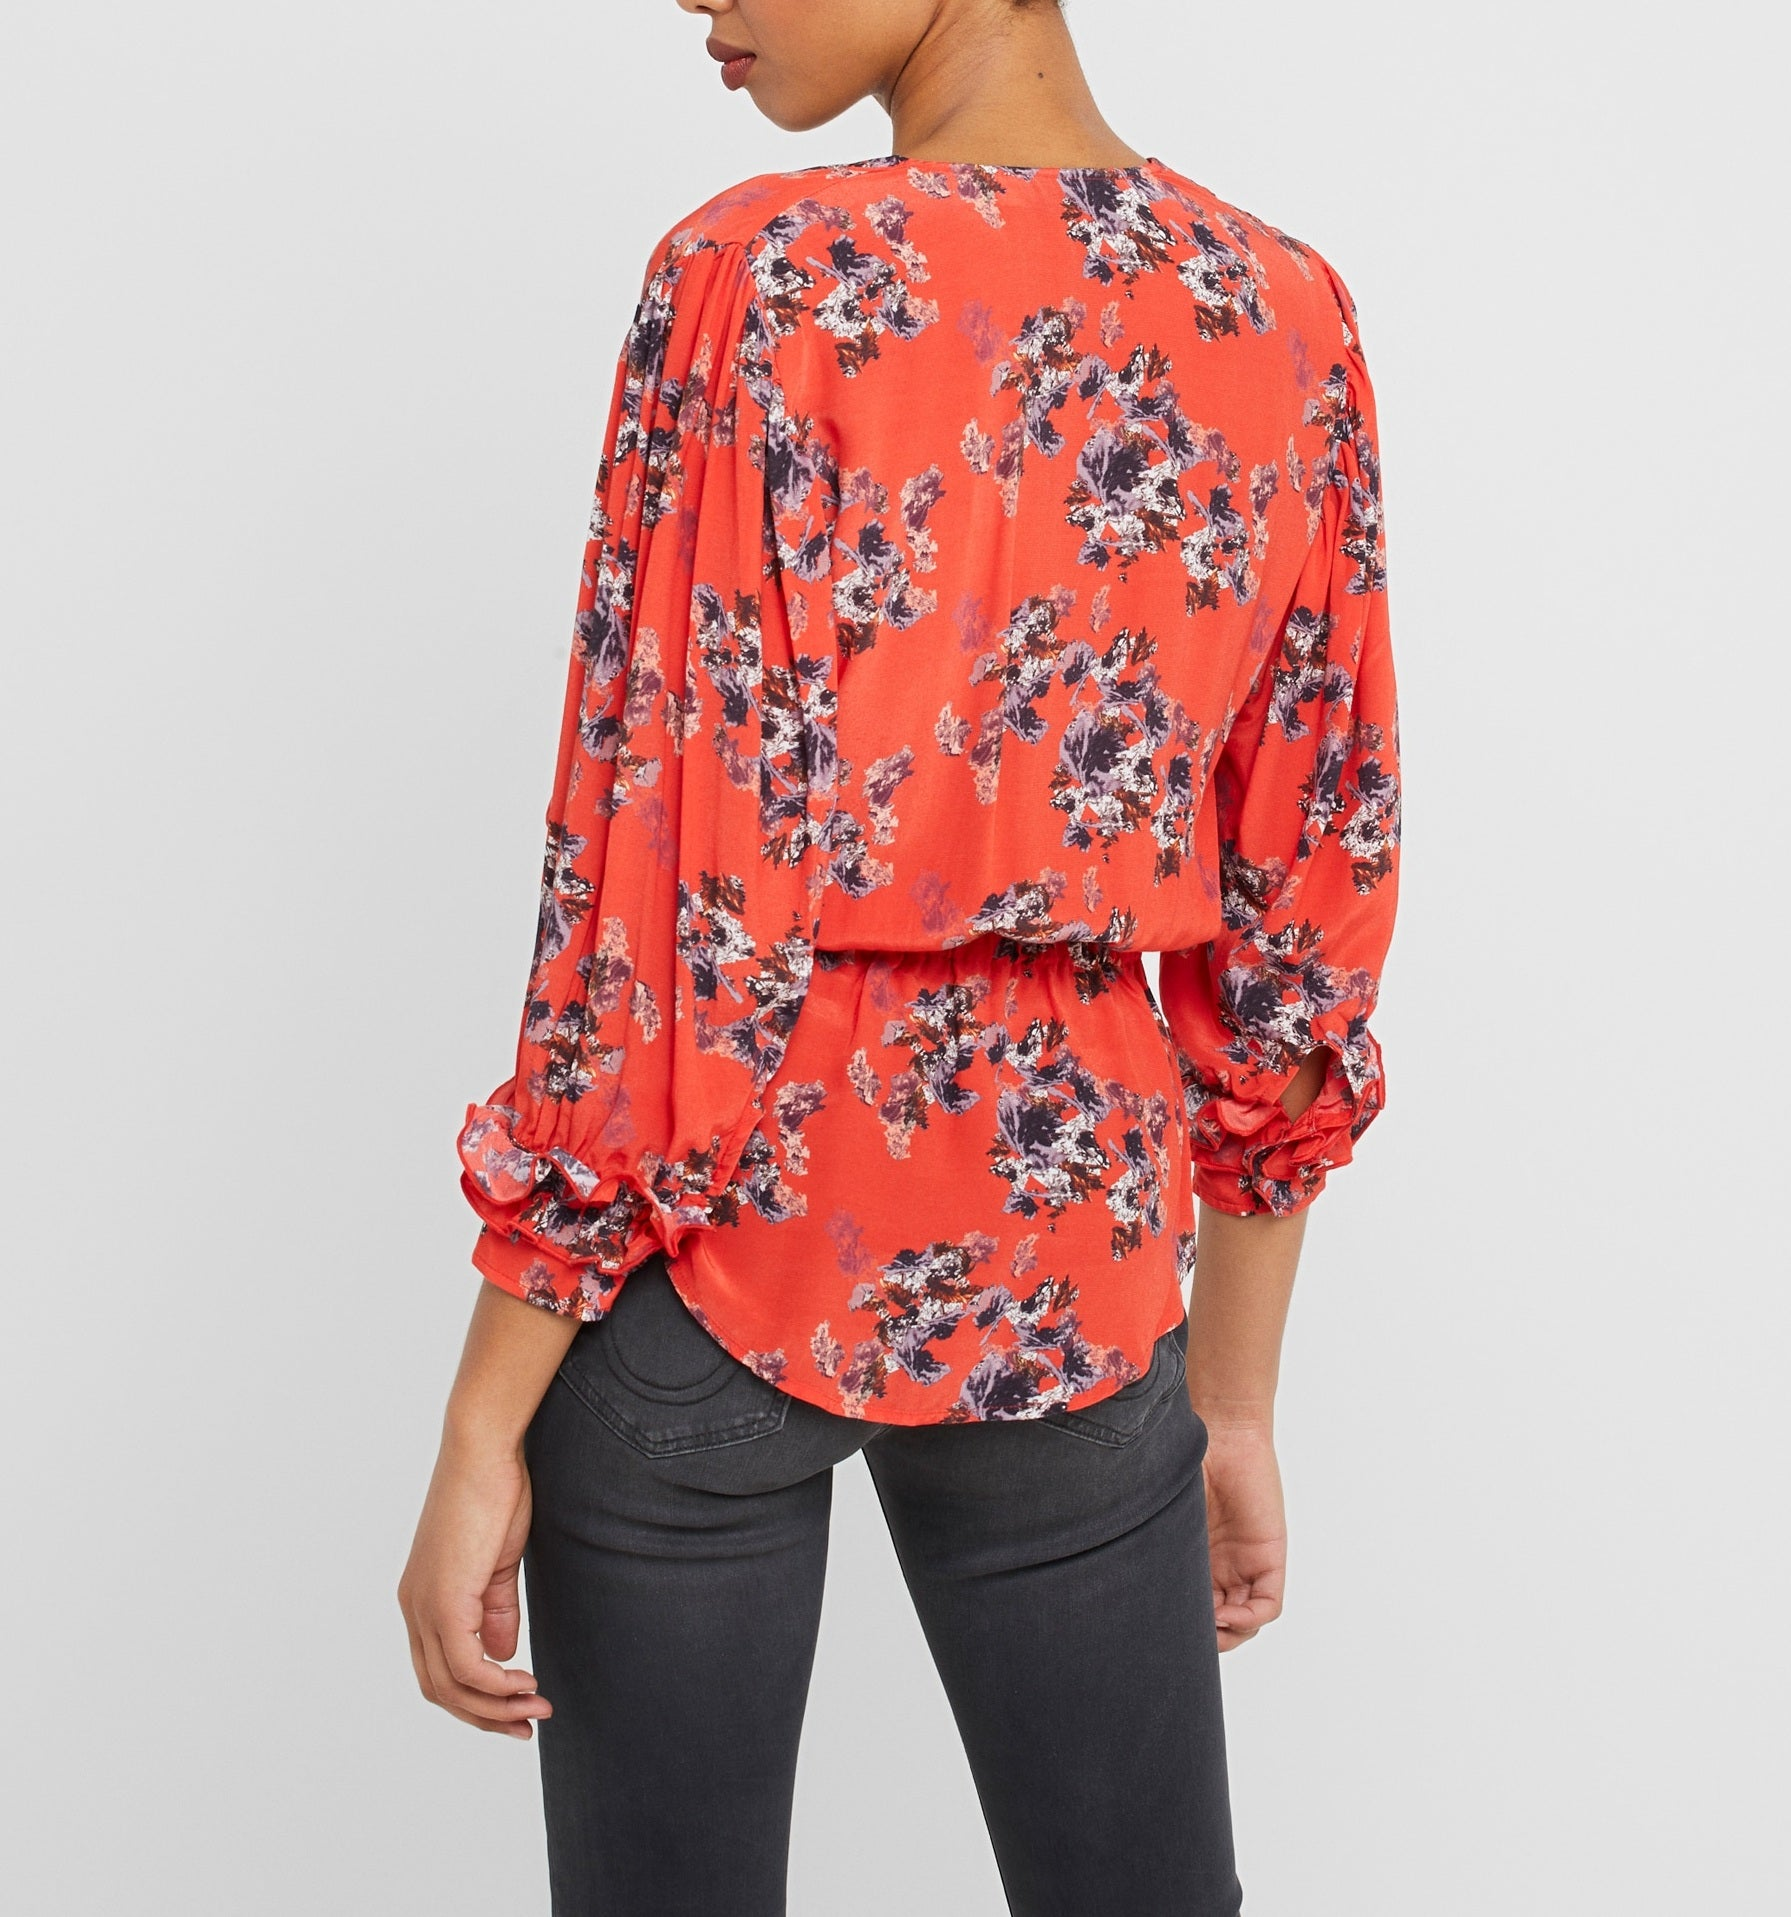 Iro Red Floral Posti Blouse, M